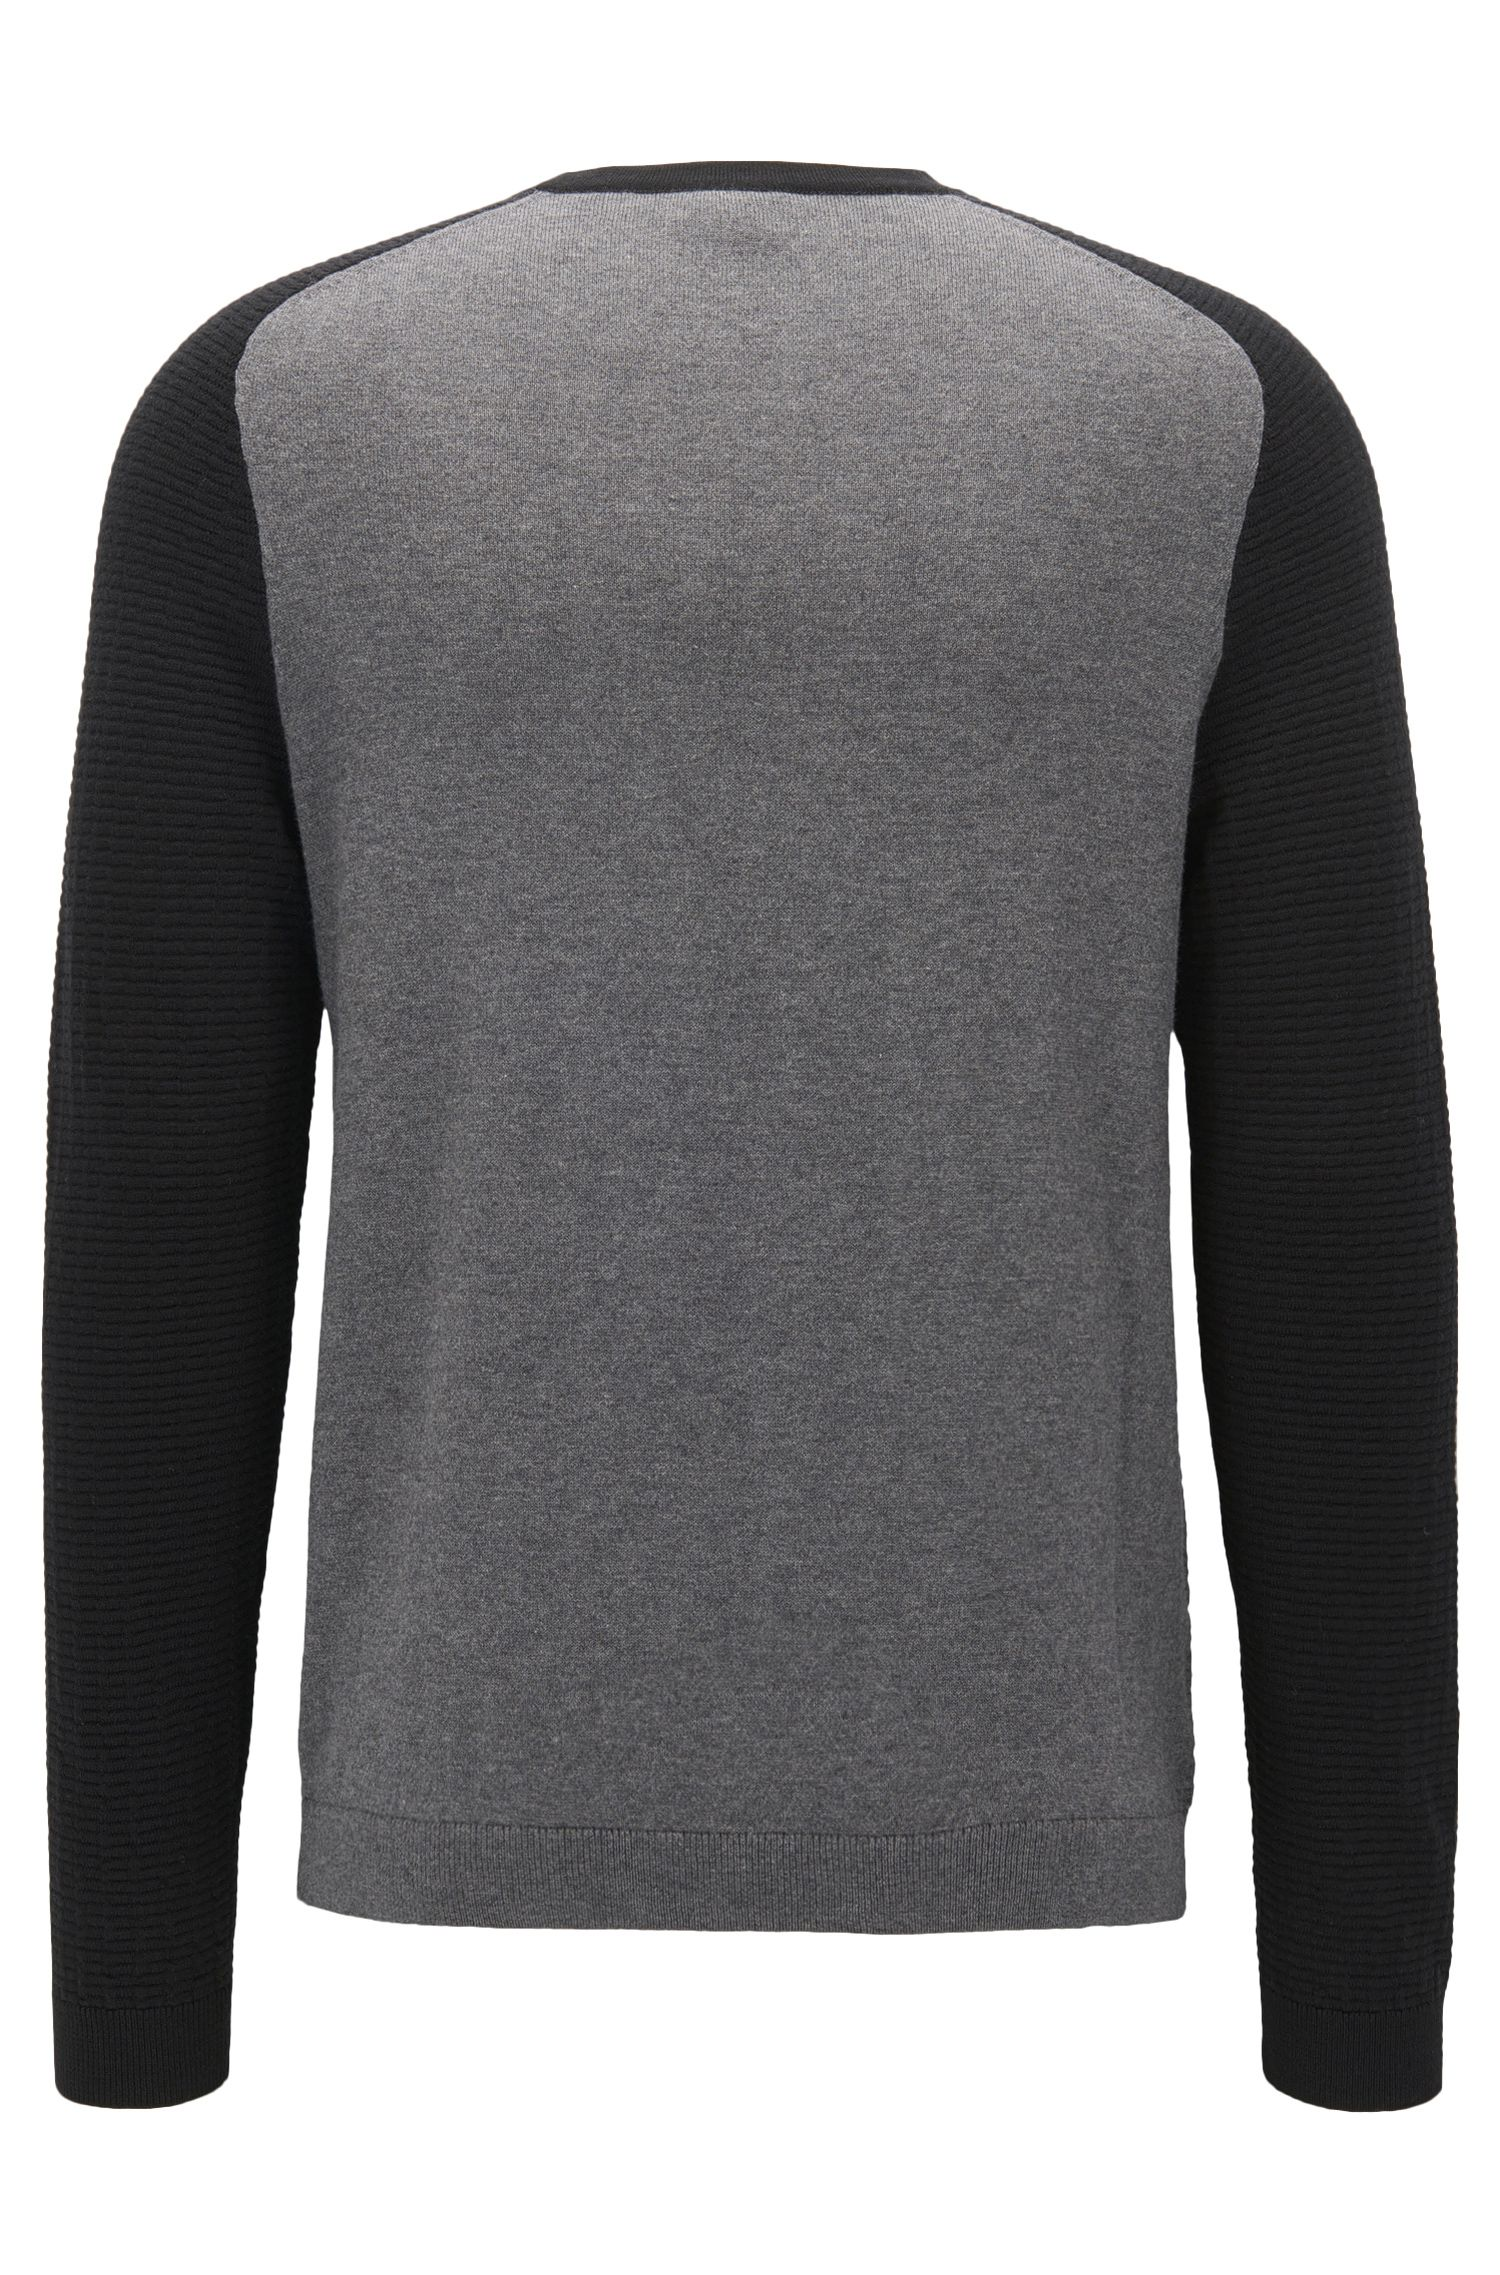 Regular-Fit Pullover aus Baumwoll-Mix im Colour Block Design, Grau